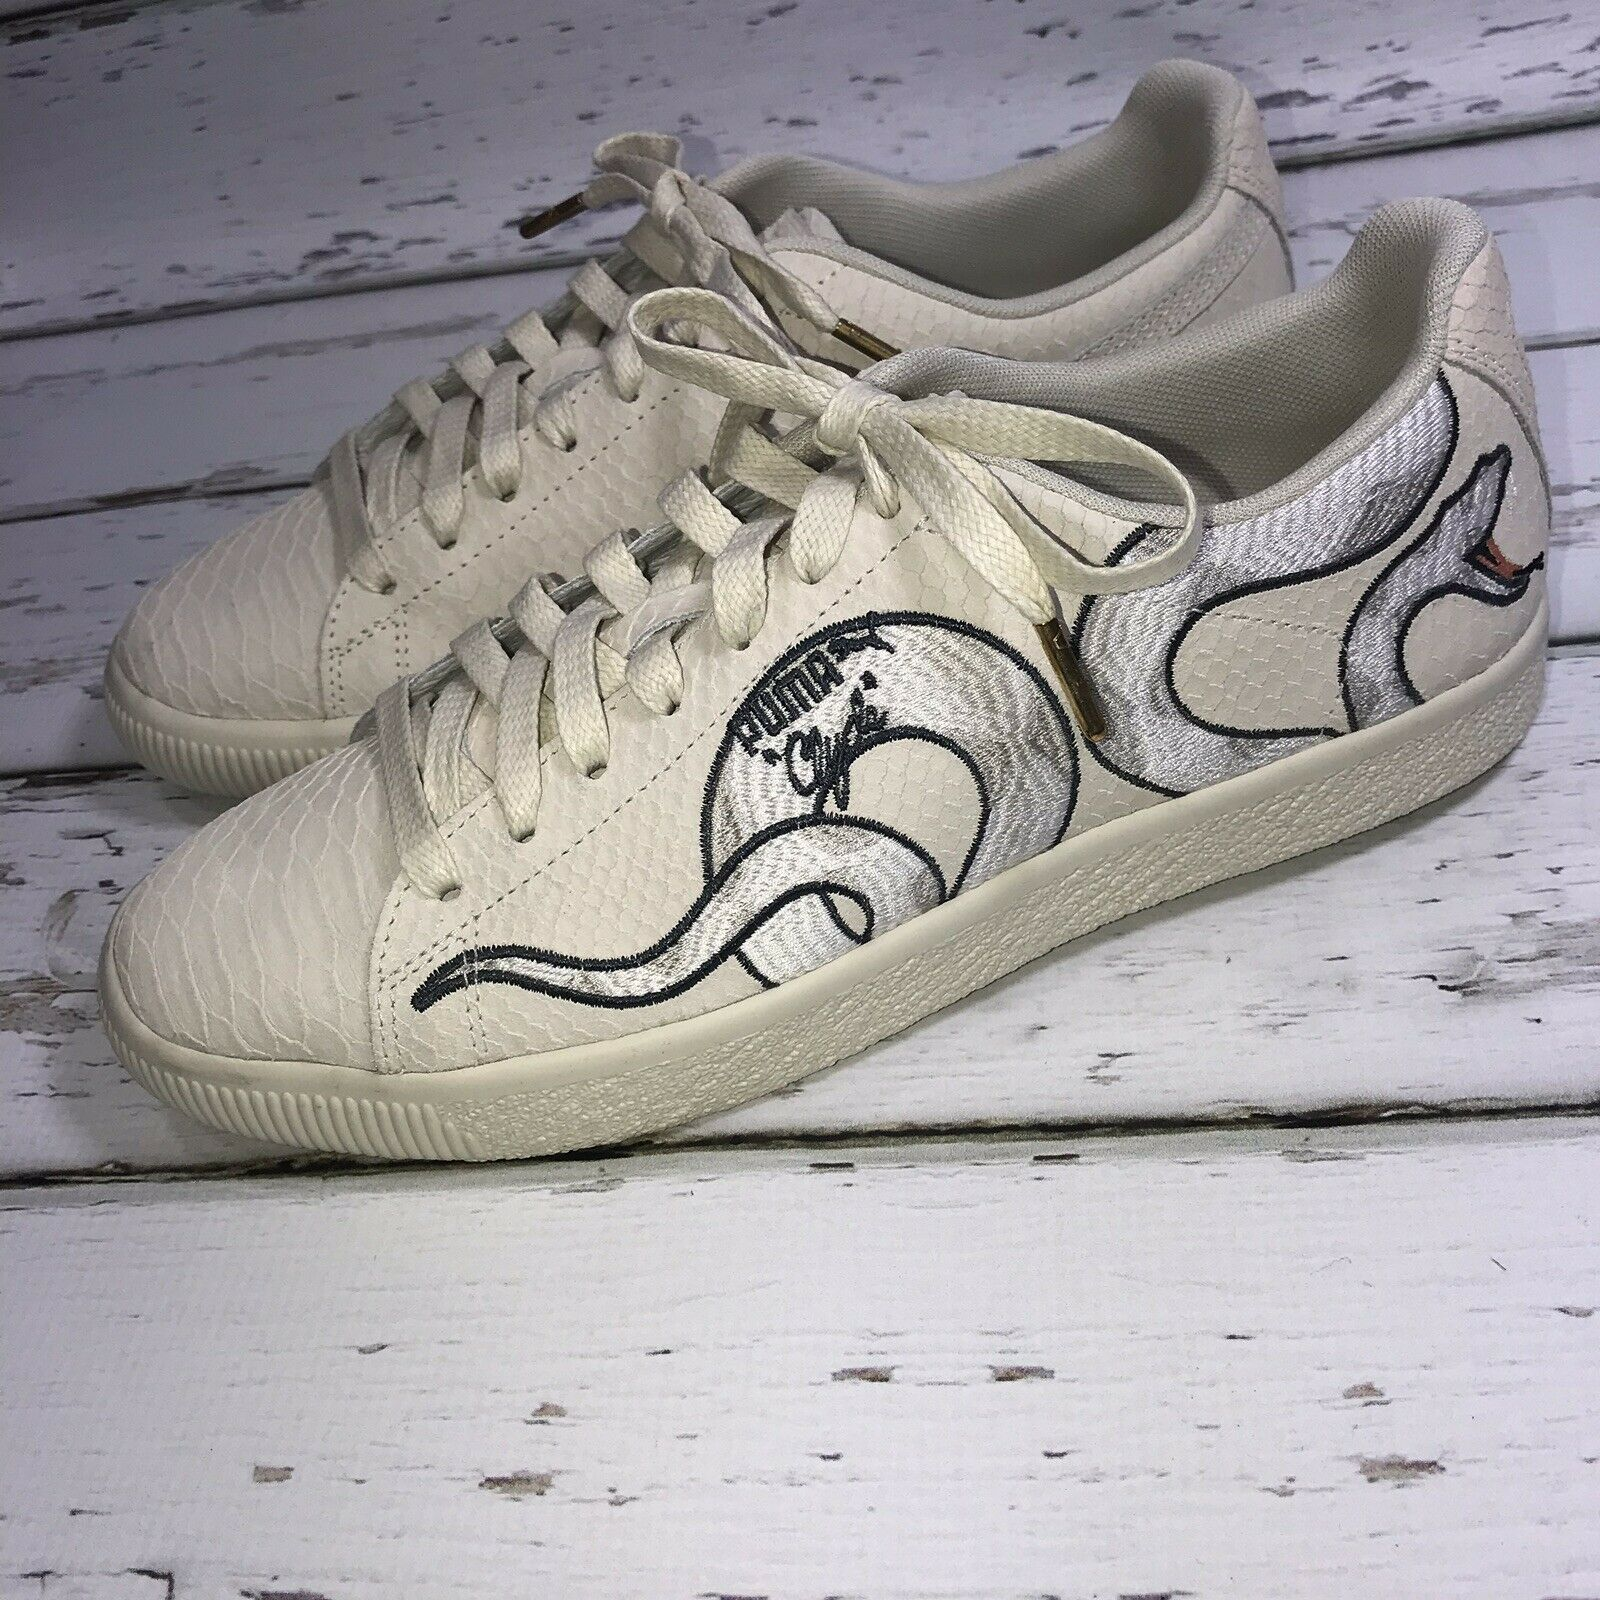 Puma Clyde Collaboration Size 9.5 Mens Snake Detail Cream shoes